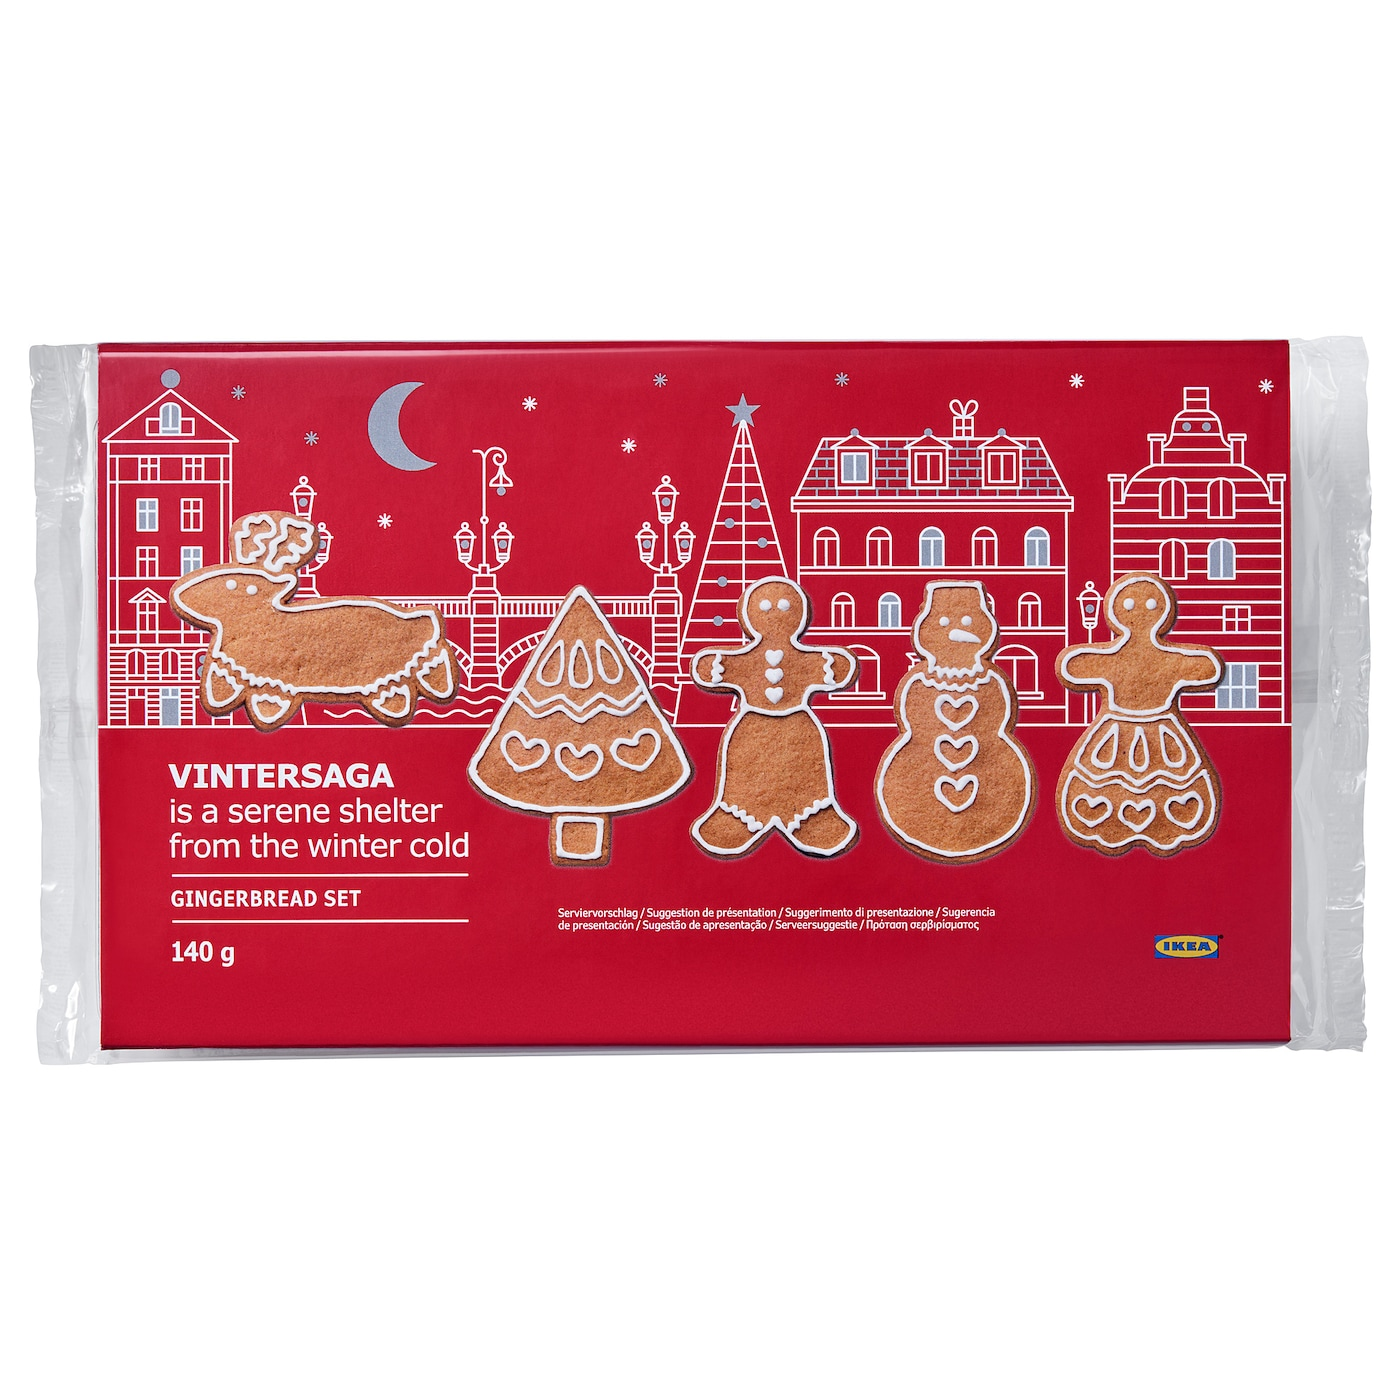 IKEA VINTERSAGA gingerbread set